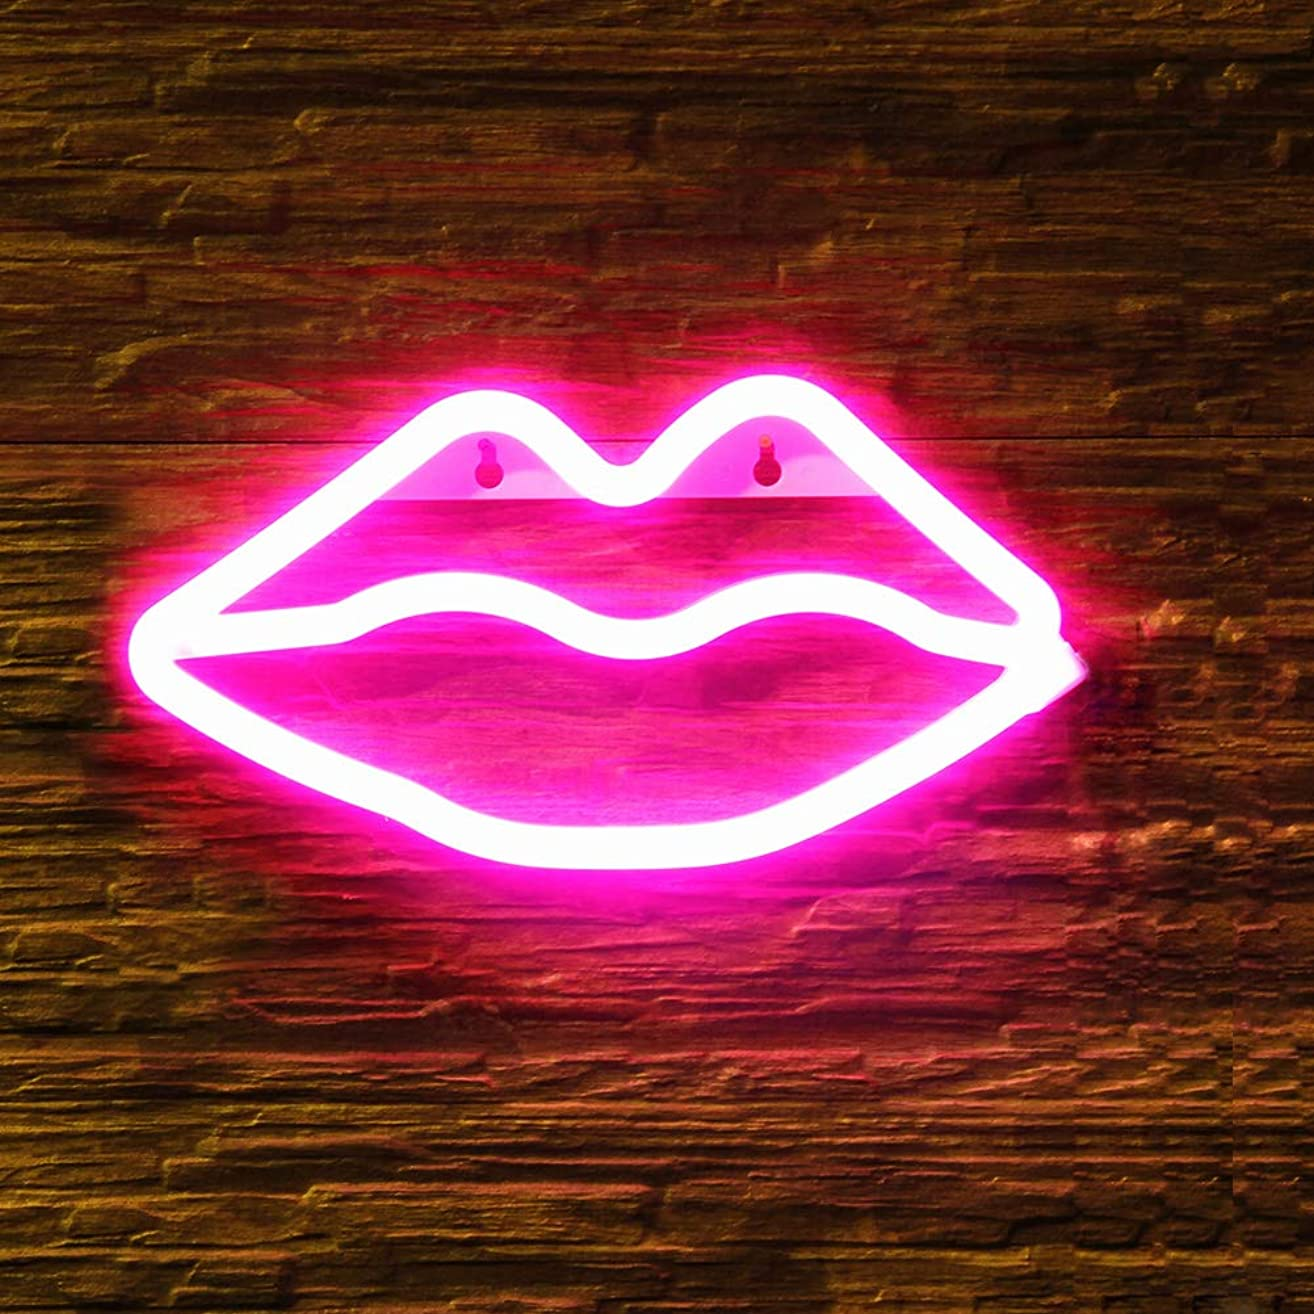 OYE HOYE Decorative LED Lip Shaped Neon Night Light, Neon Sign Operated by Battery/USB Idea for Home Decoration,House Bar Pub Hotel Beach Recreational, Valentine's Day, Christmas